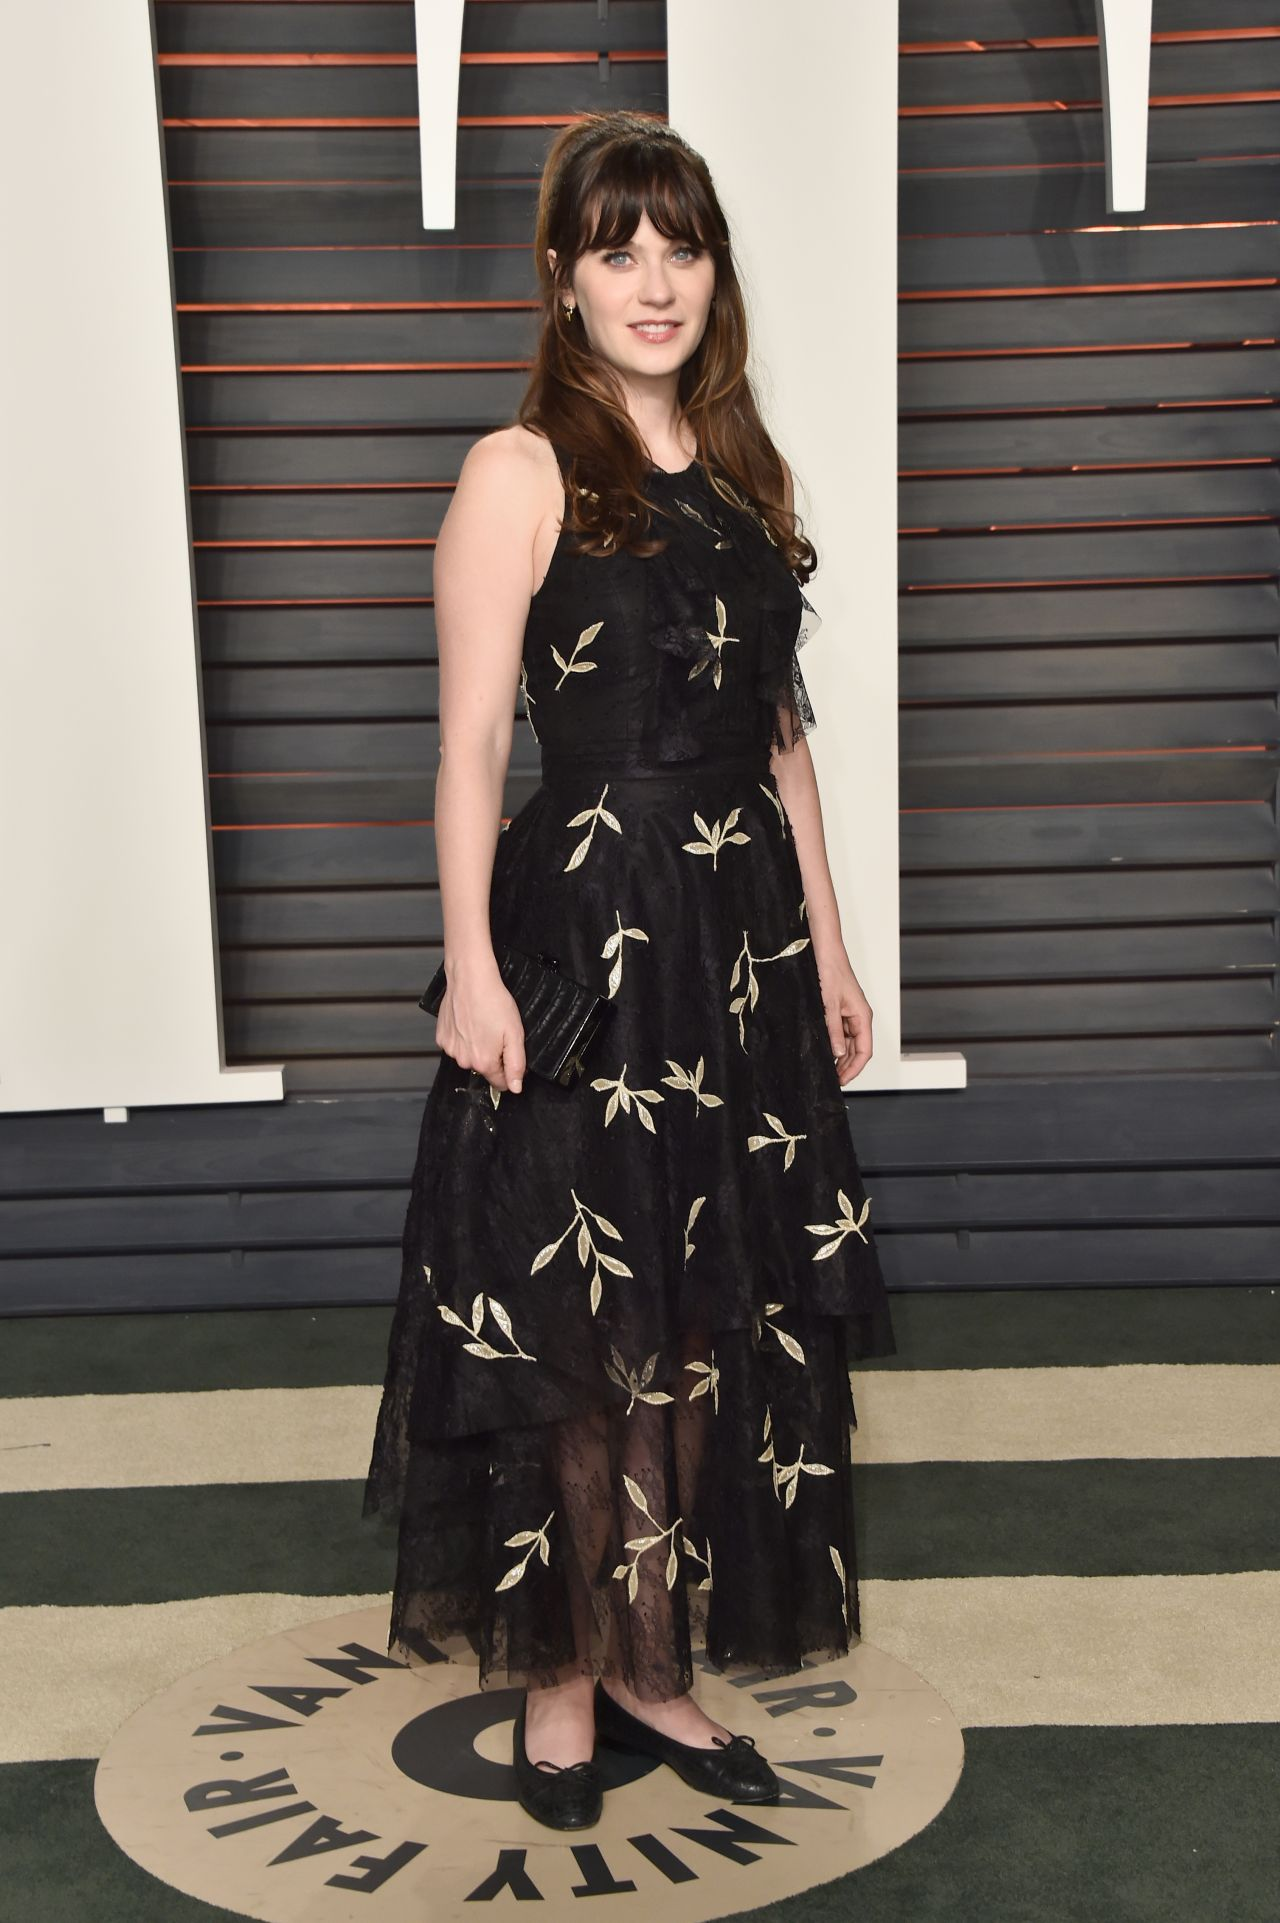 zooey-deschanel-vanity-fair-oscar-2016-party-in-beverly-hills-ca-1